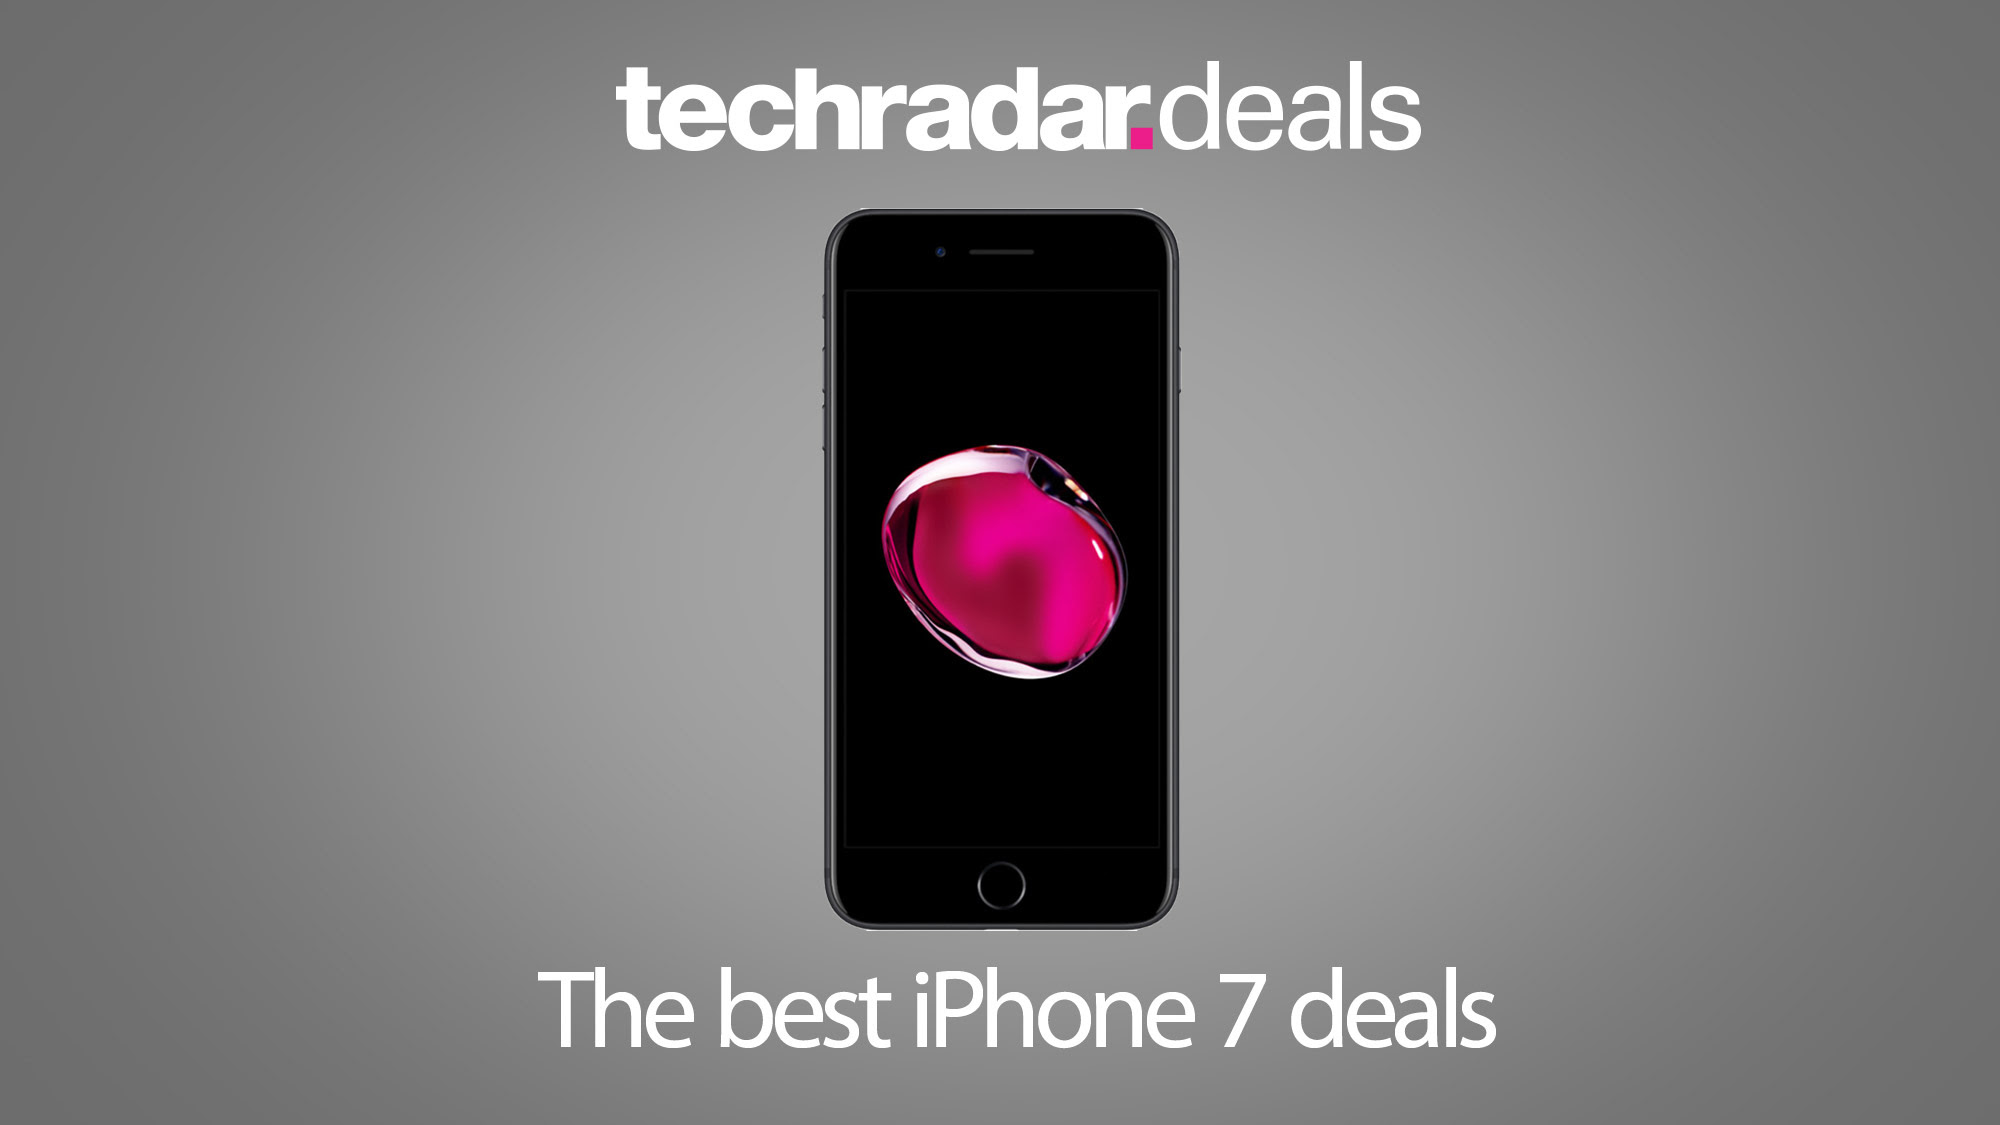 The best iPhone 7 deals in September 2019